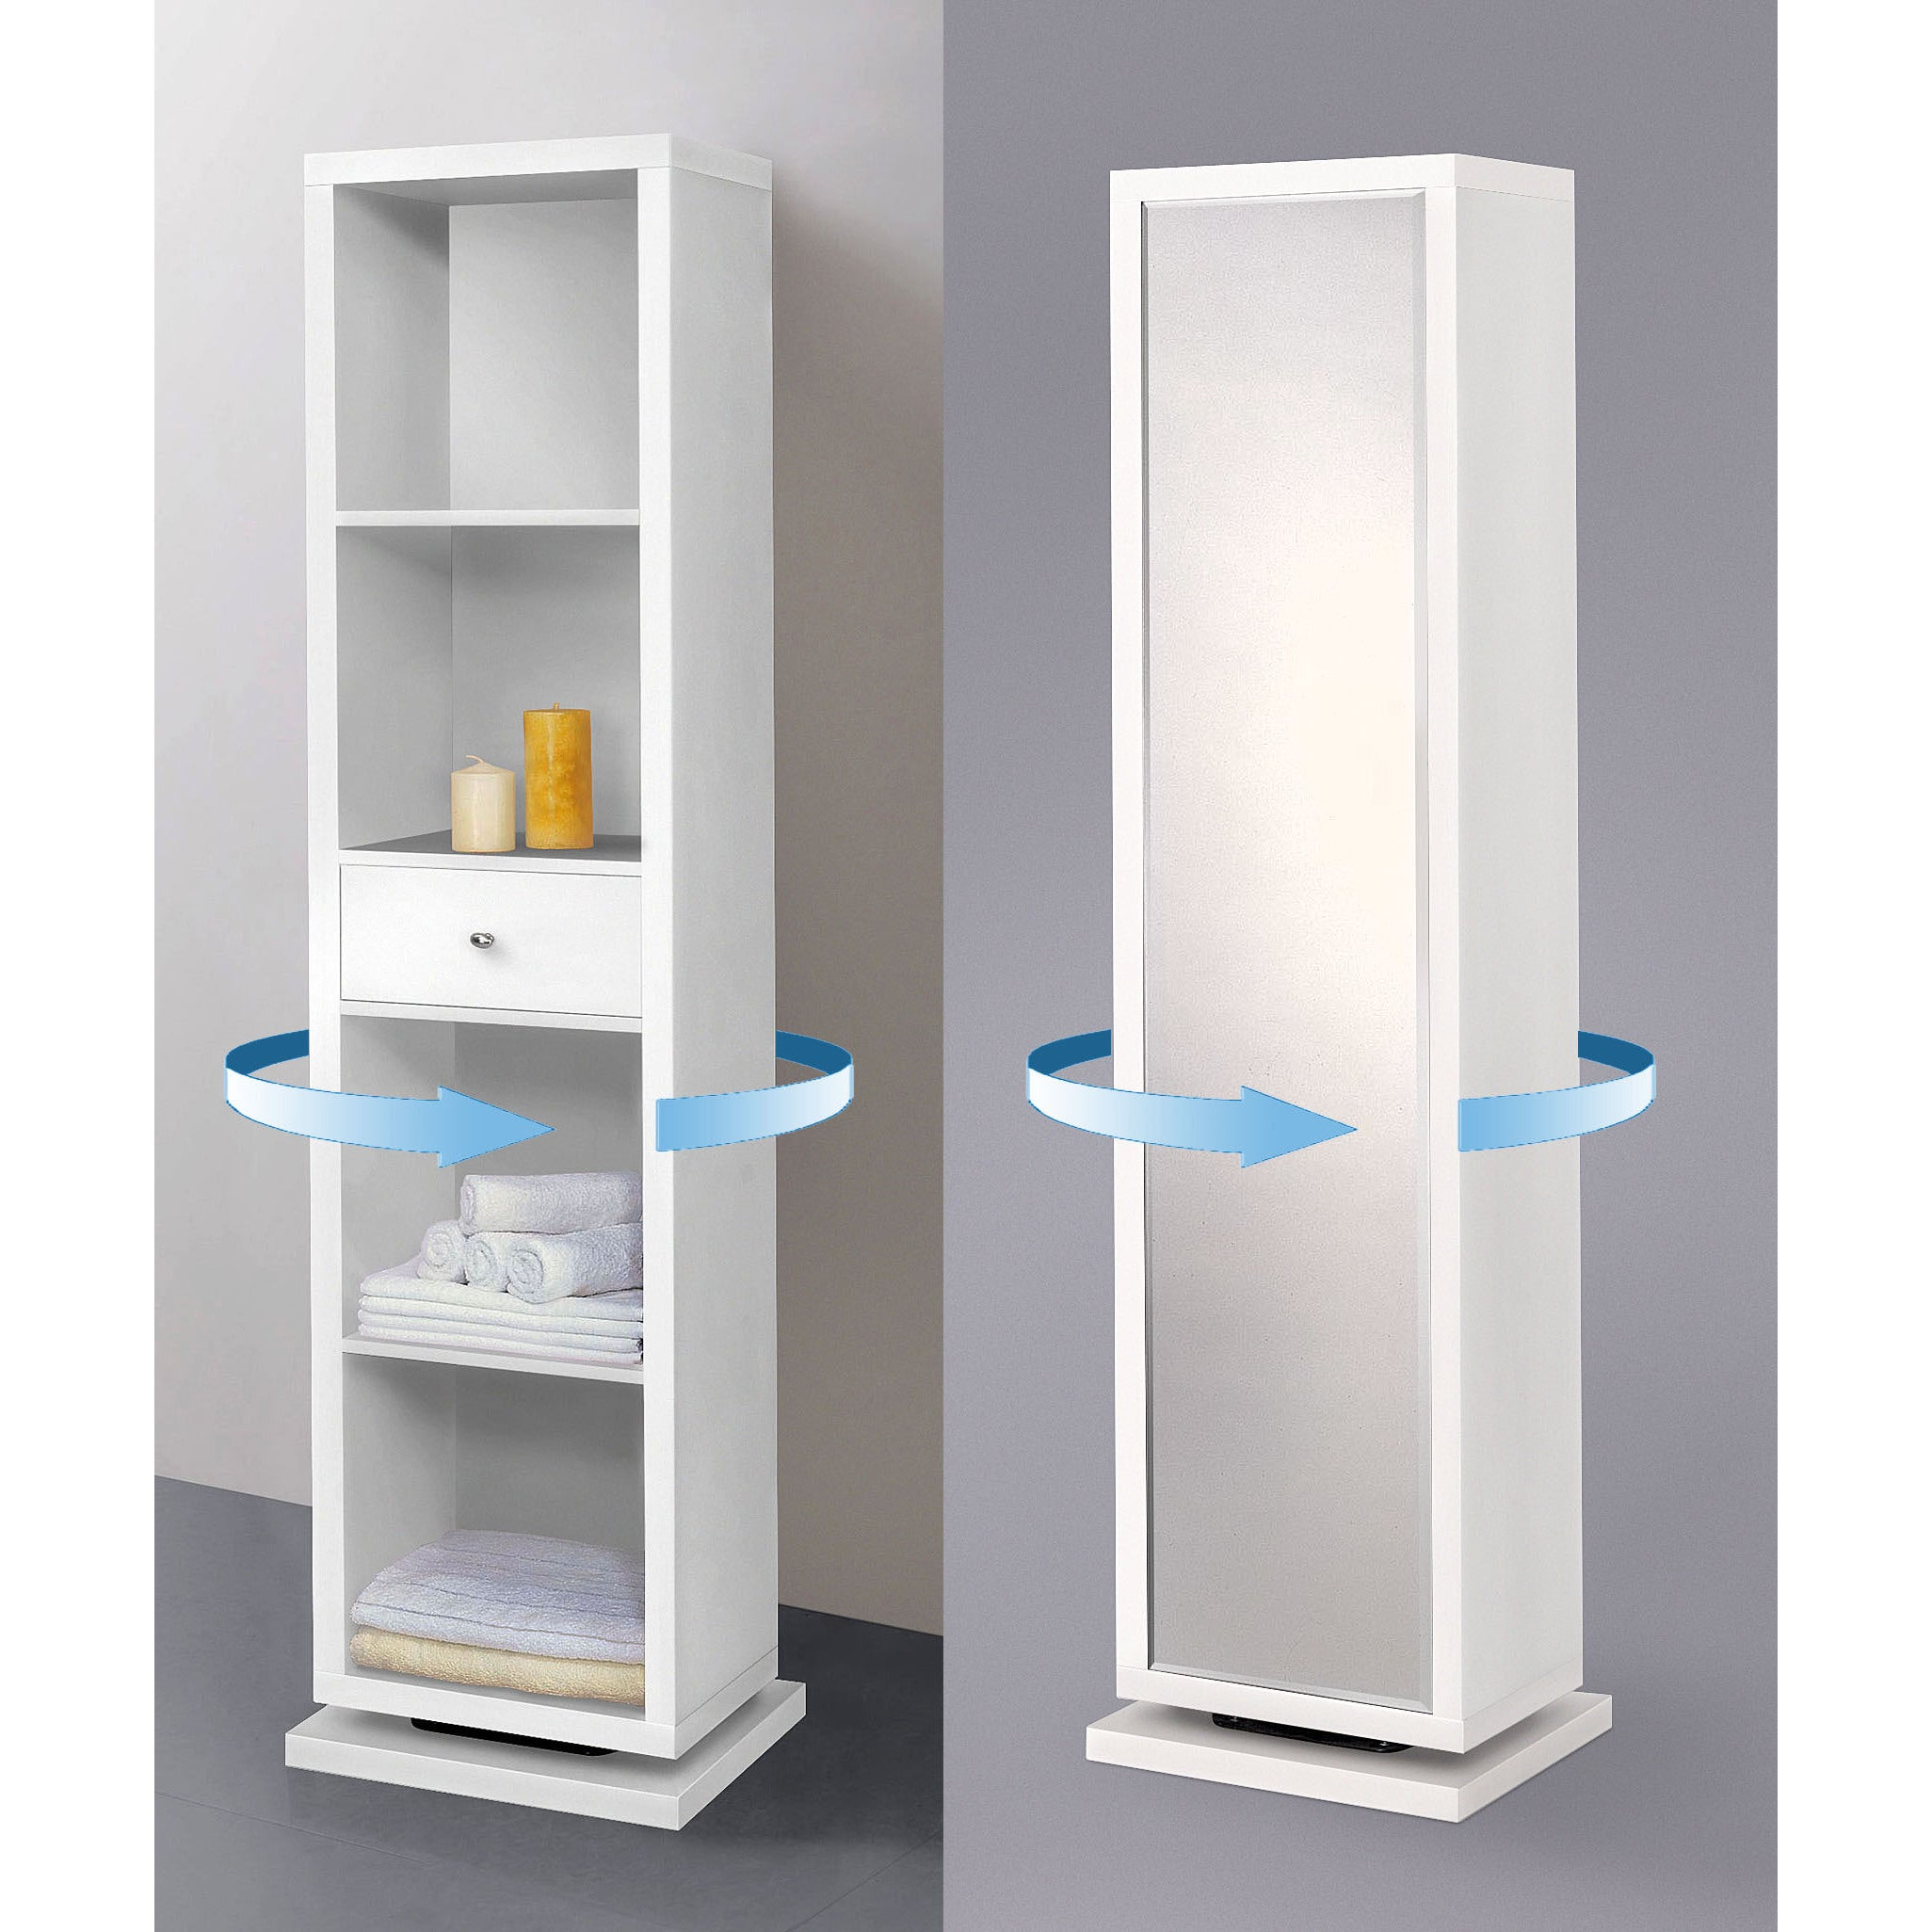 Buy Glass Bathroom Cabinets & Storage Online at Overstock.com | Our ...